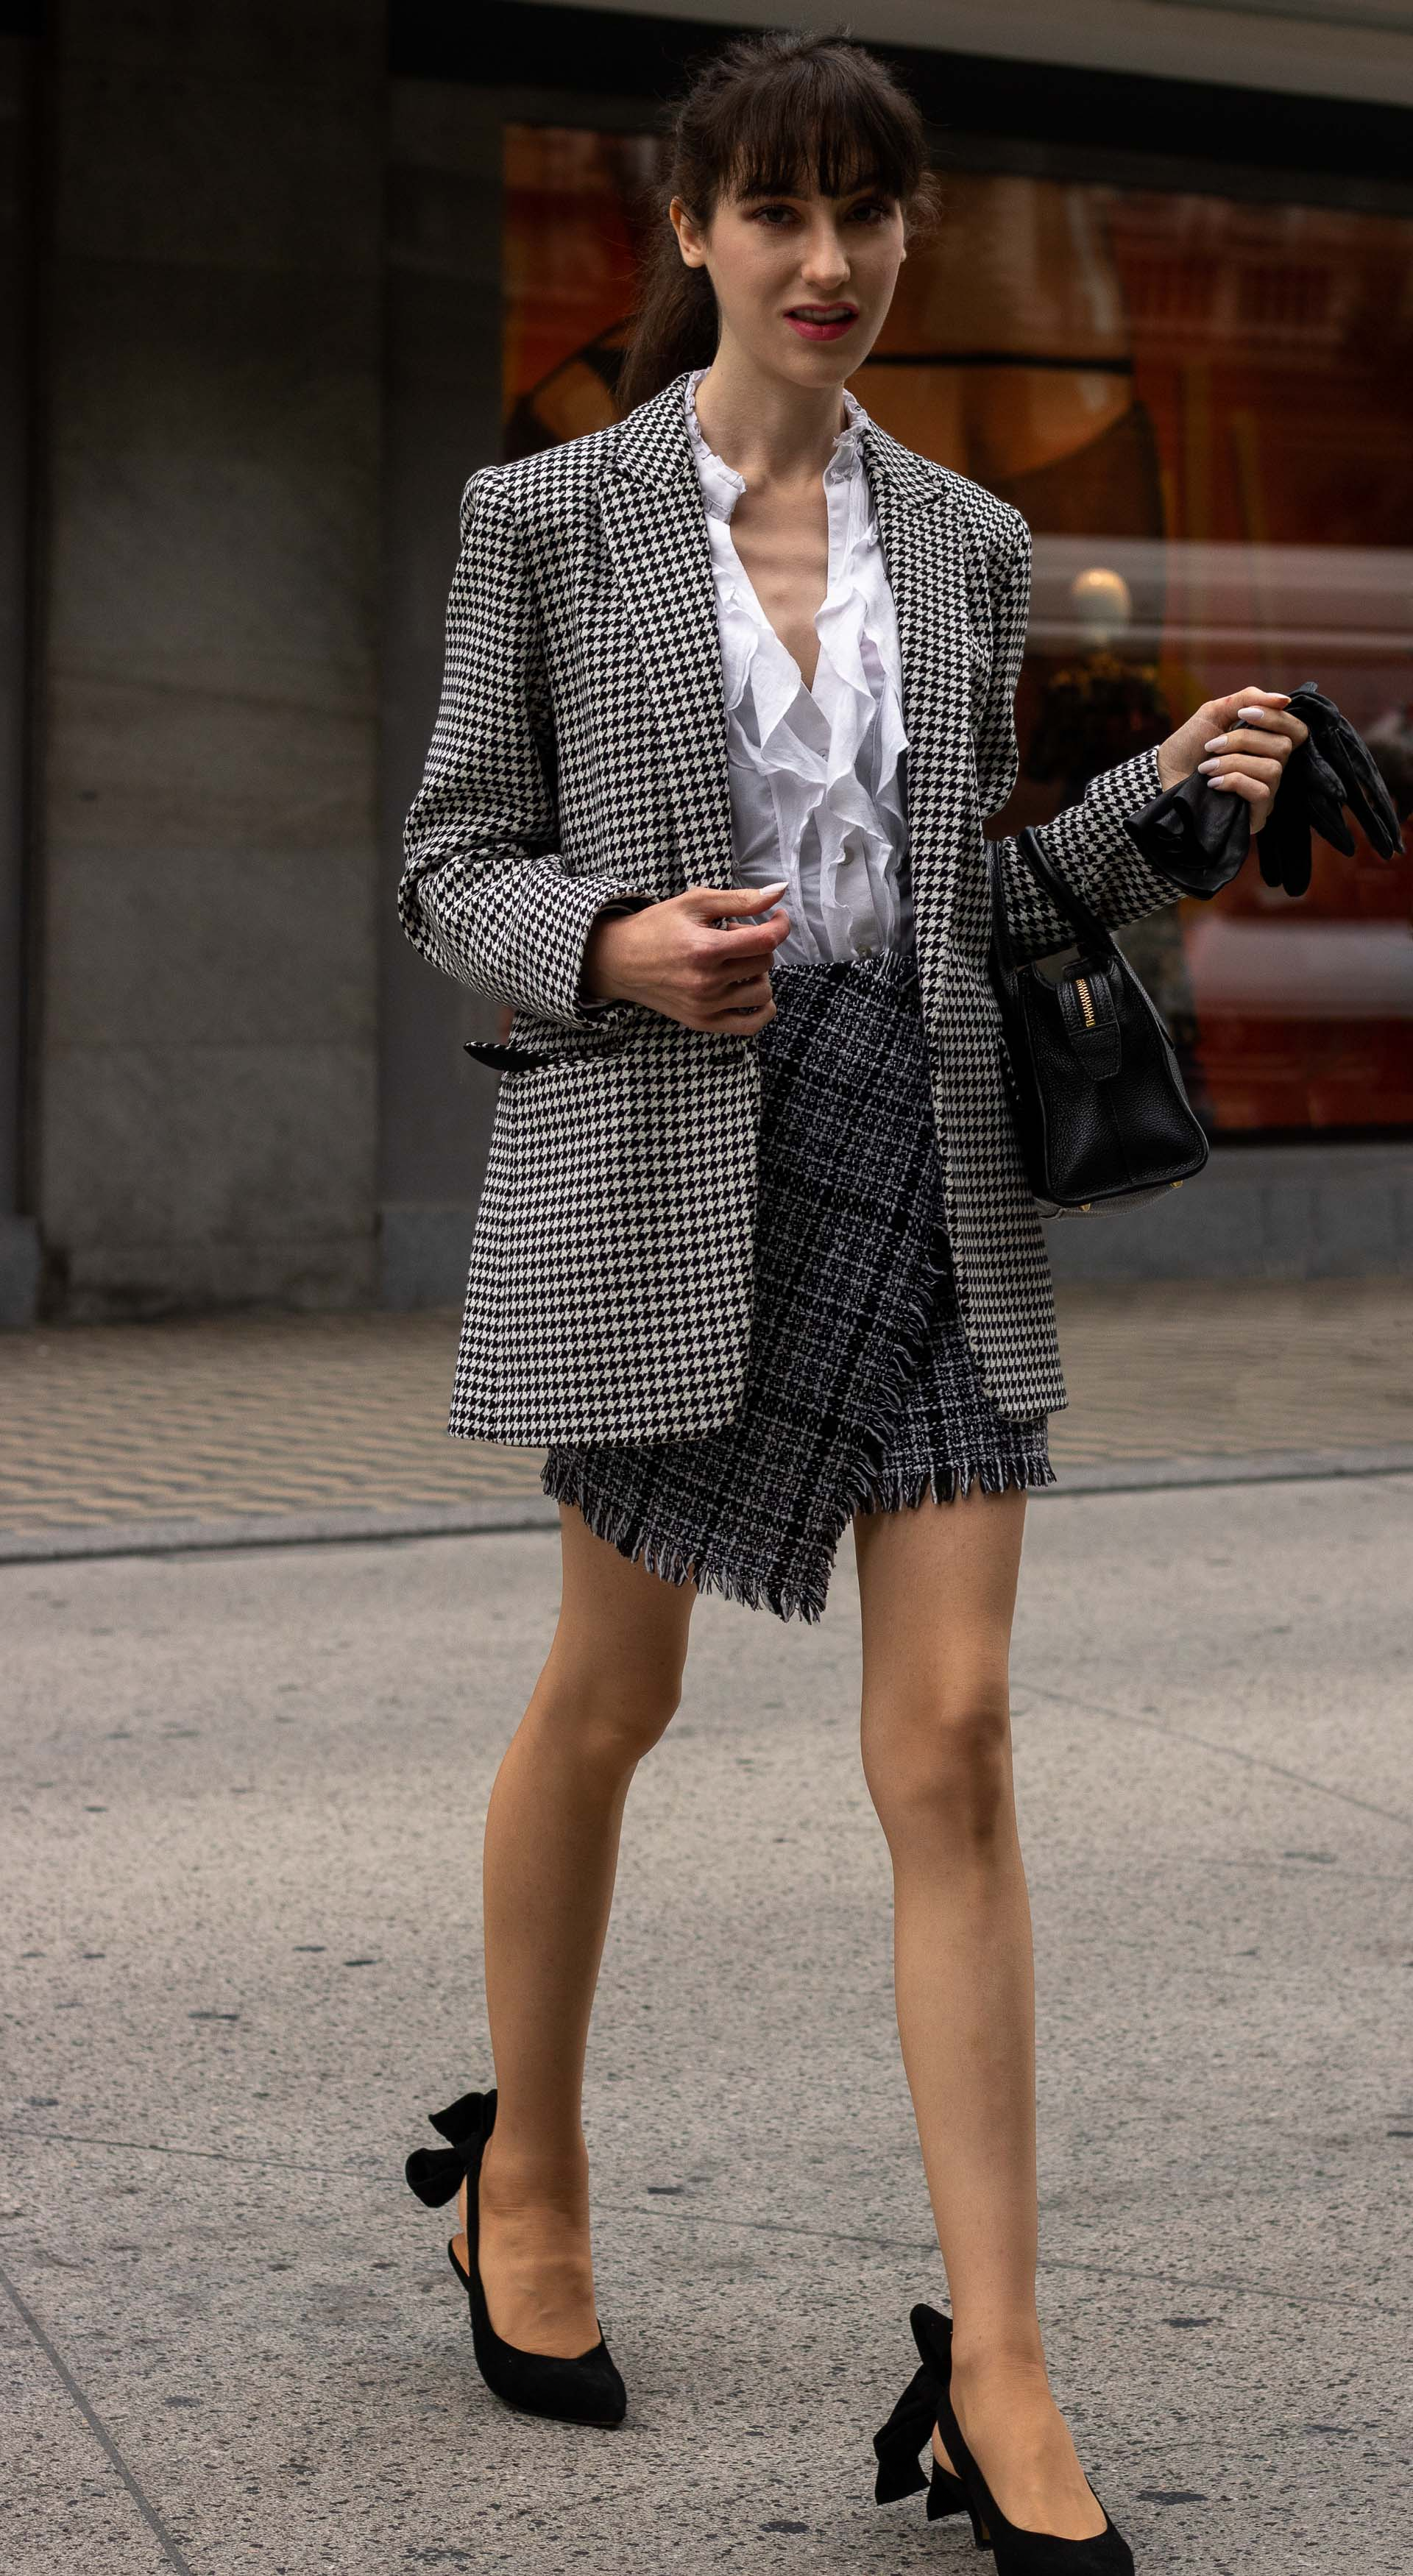 Fashion blogger Veronika Lipar of Brunette from Wall Street wearing Sandro Paris houndstooth jacket white blouse plaid mini skirt Ganni black slingbacks black top handle bag bangs ponytail going to work